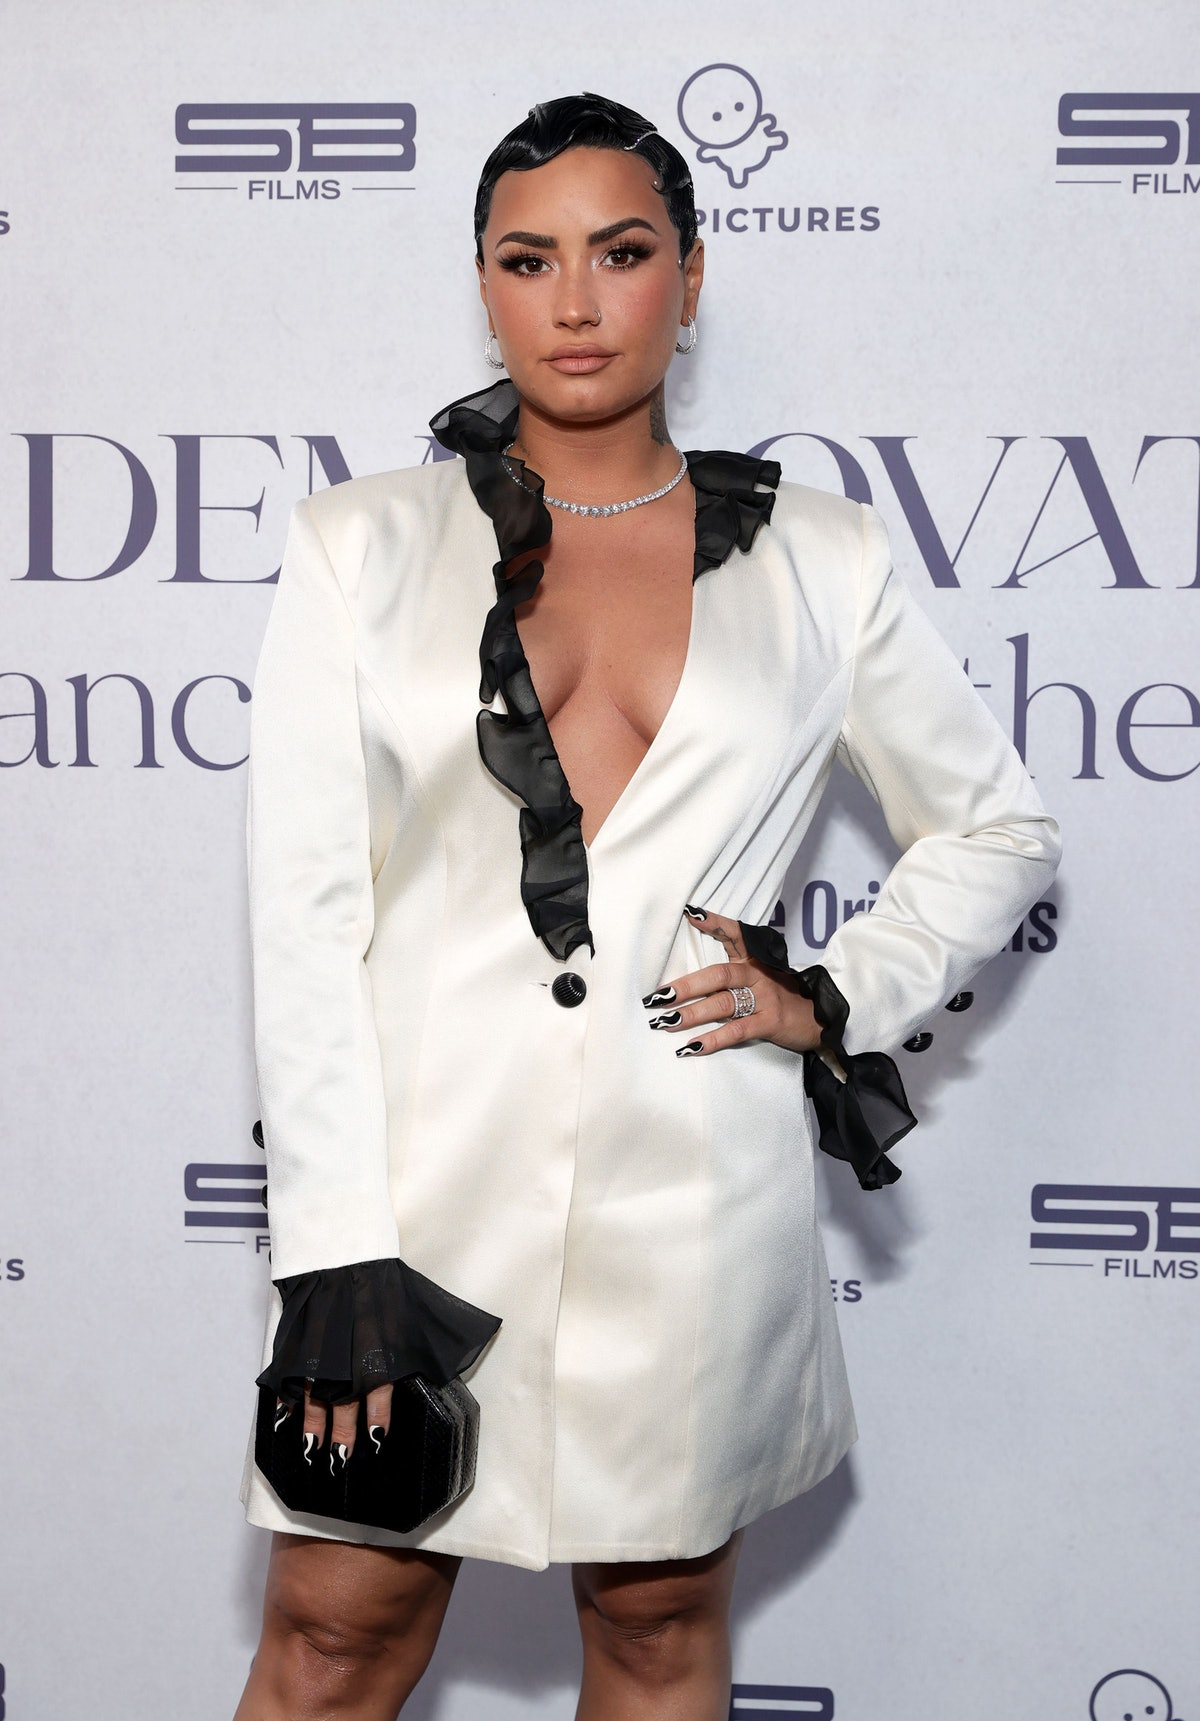 Demi Lovato came out as non-binary in new video.